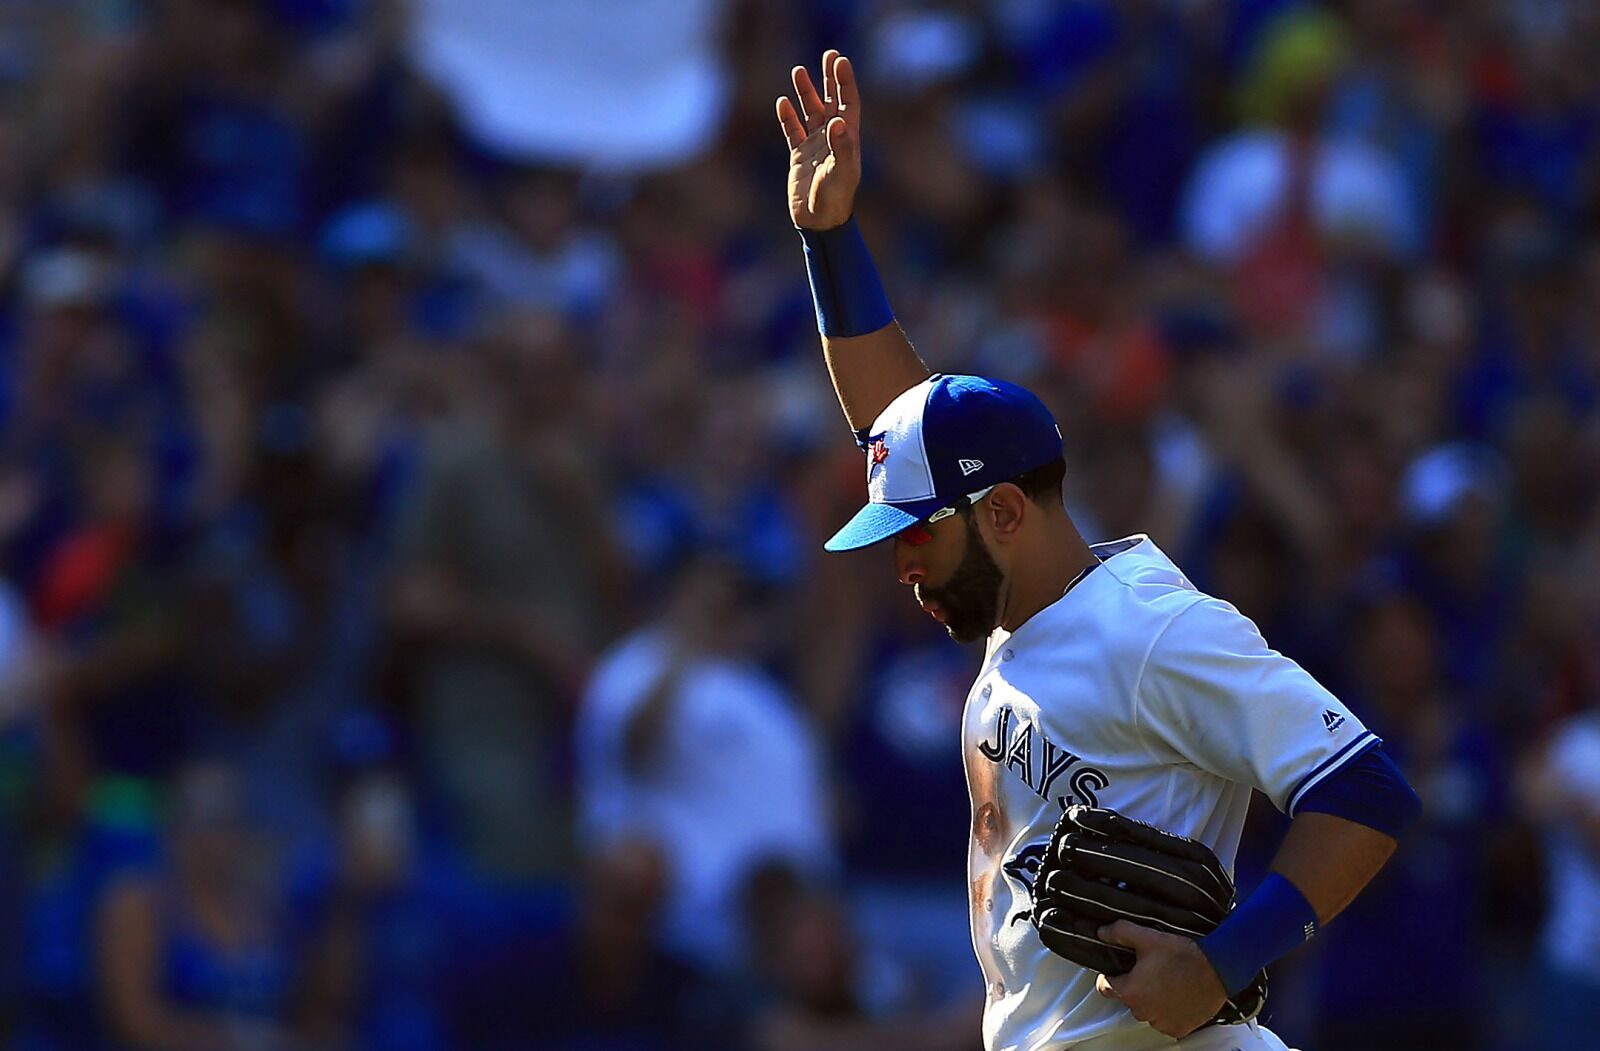 Blue Jays should offer Jose Bautista a job in the organization